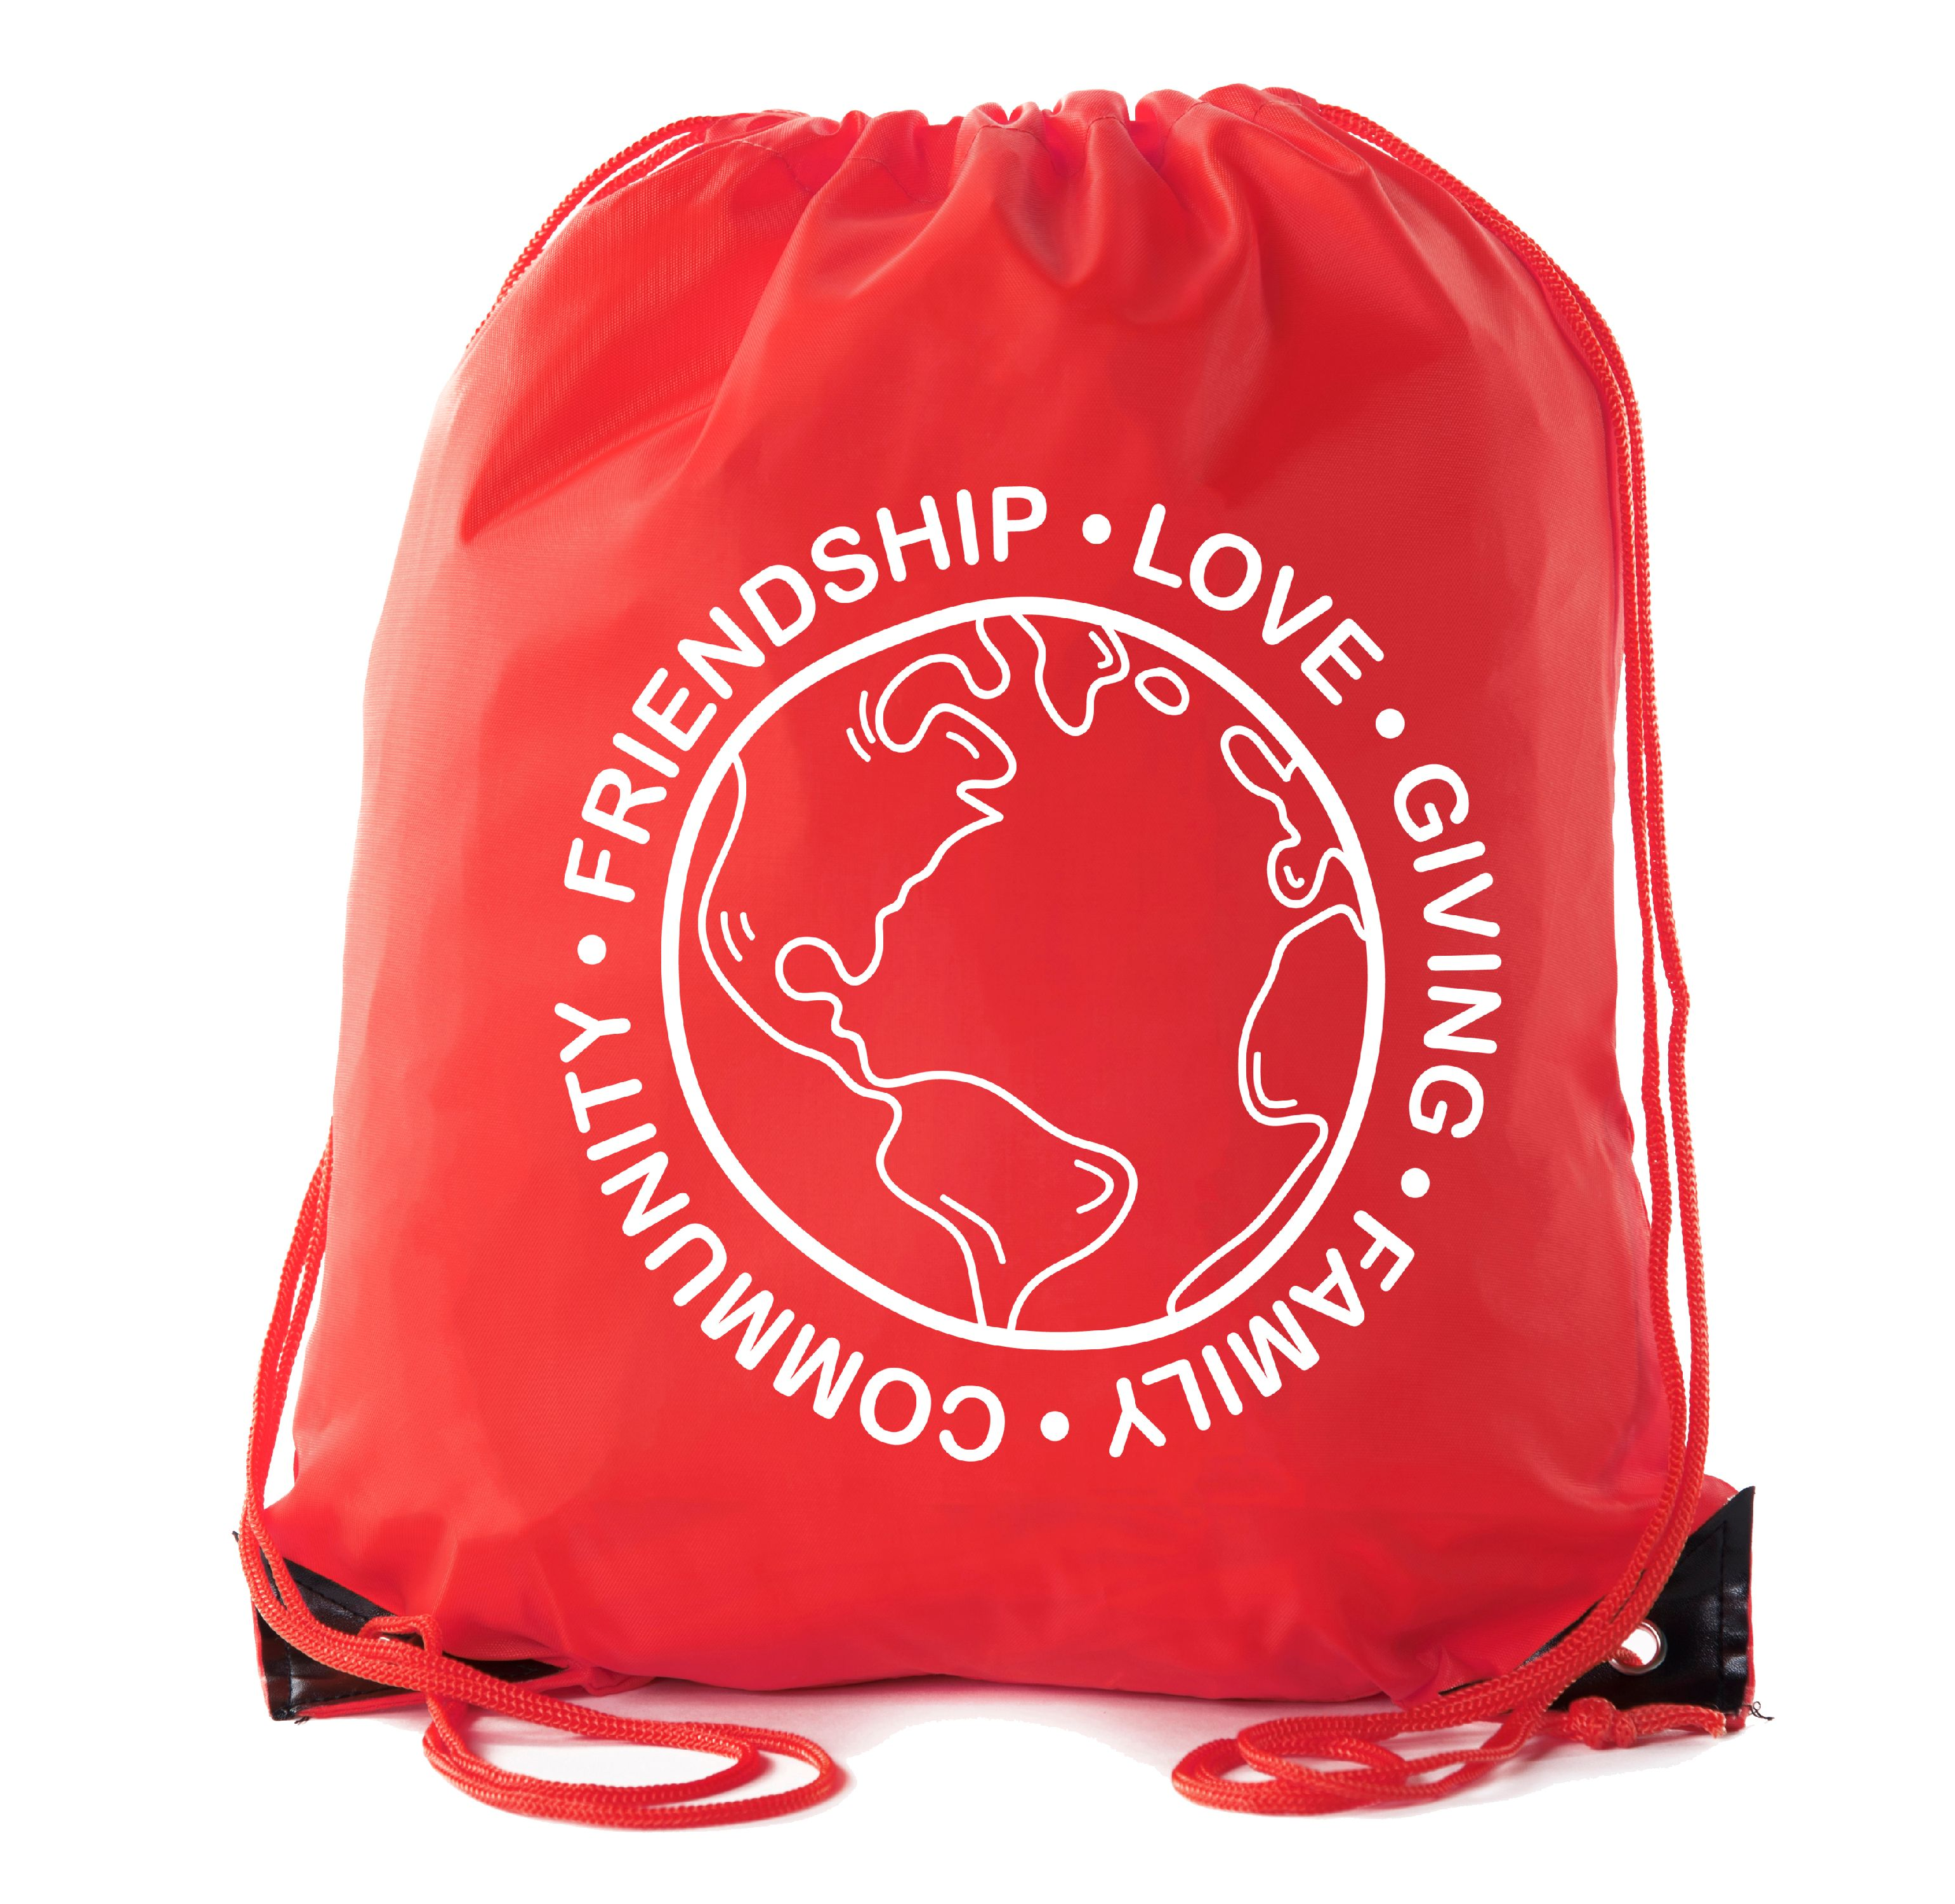 Inspirational gift Bags, Promotional Bags for Charities, Non-Profits, and Fundraising